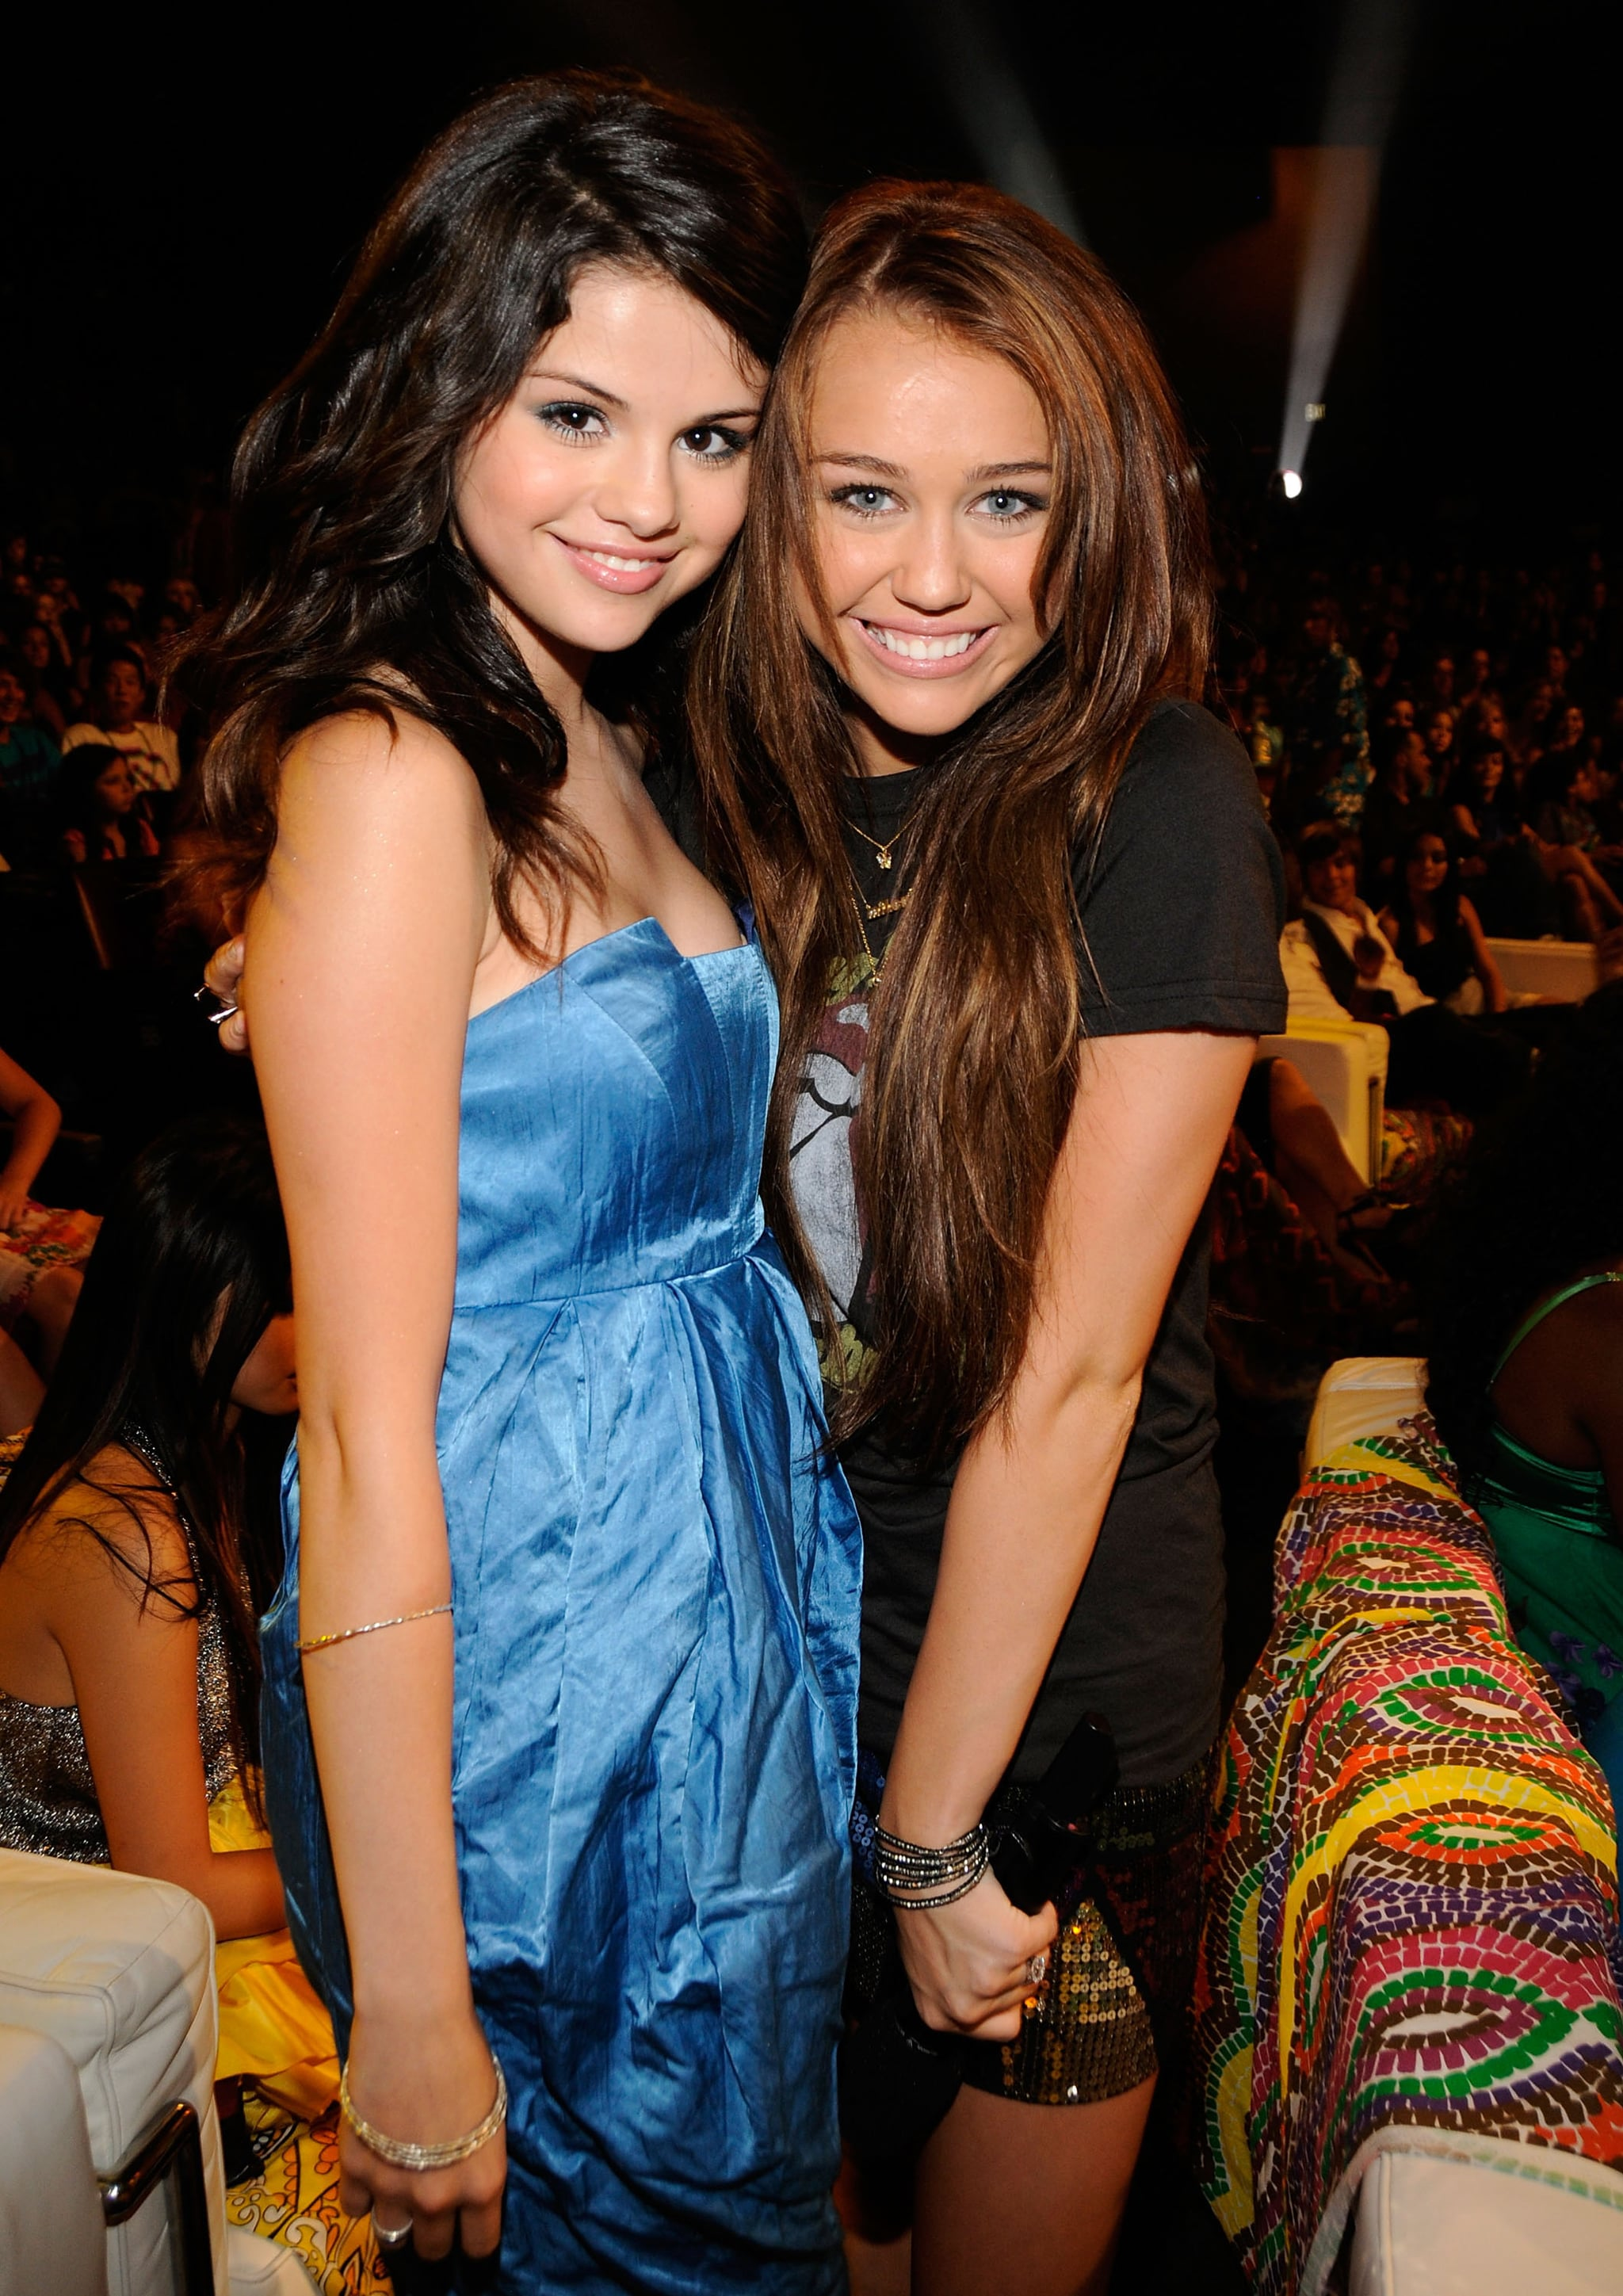 (EXCLUSIVE, Premium Rates Apply) LOS ANGELES, CA - AUGUST 03:  ***EXCLUSIVE***  Actress Selena Gomez and host Miley Cyrus during the 2008 Teen Choice Awards at Gibson Amphitheater on August 3, 2008 in Los Angeles, California.  (Photo by K Mazur/TCA 2008/WireImage)